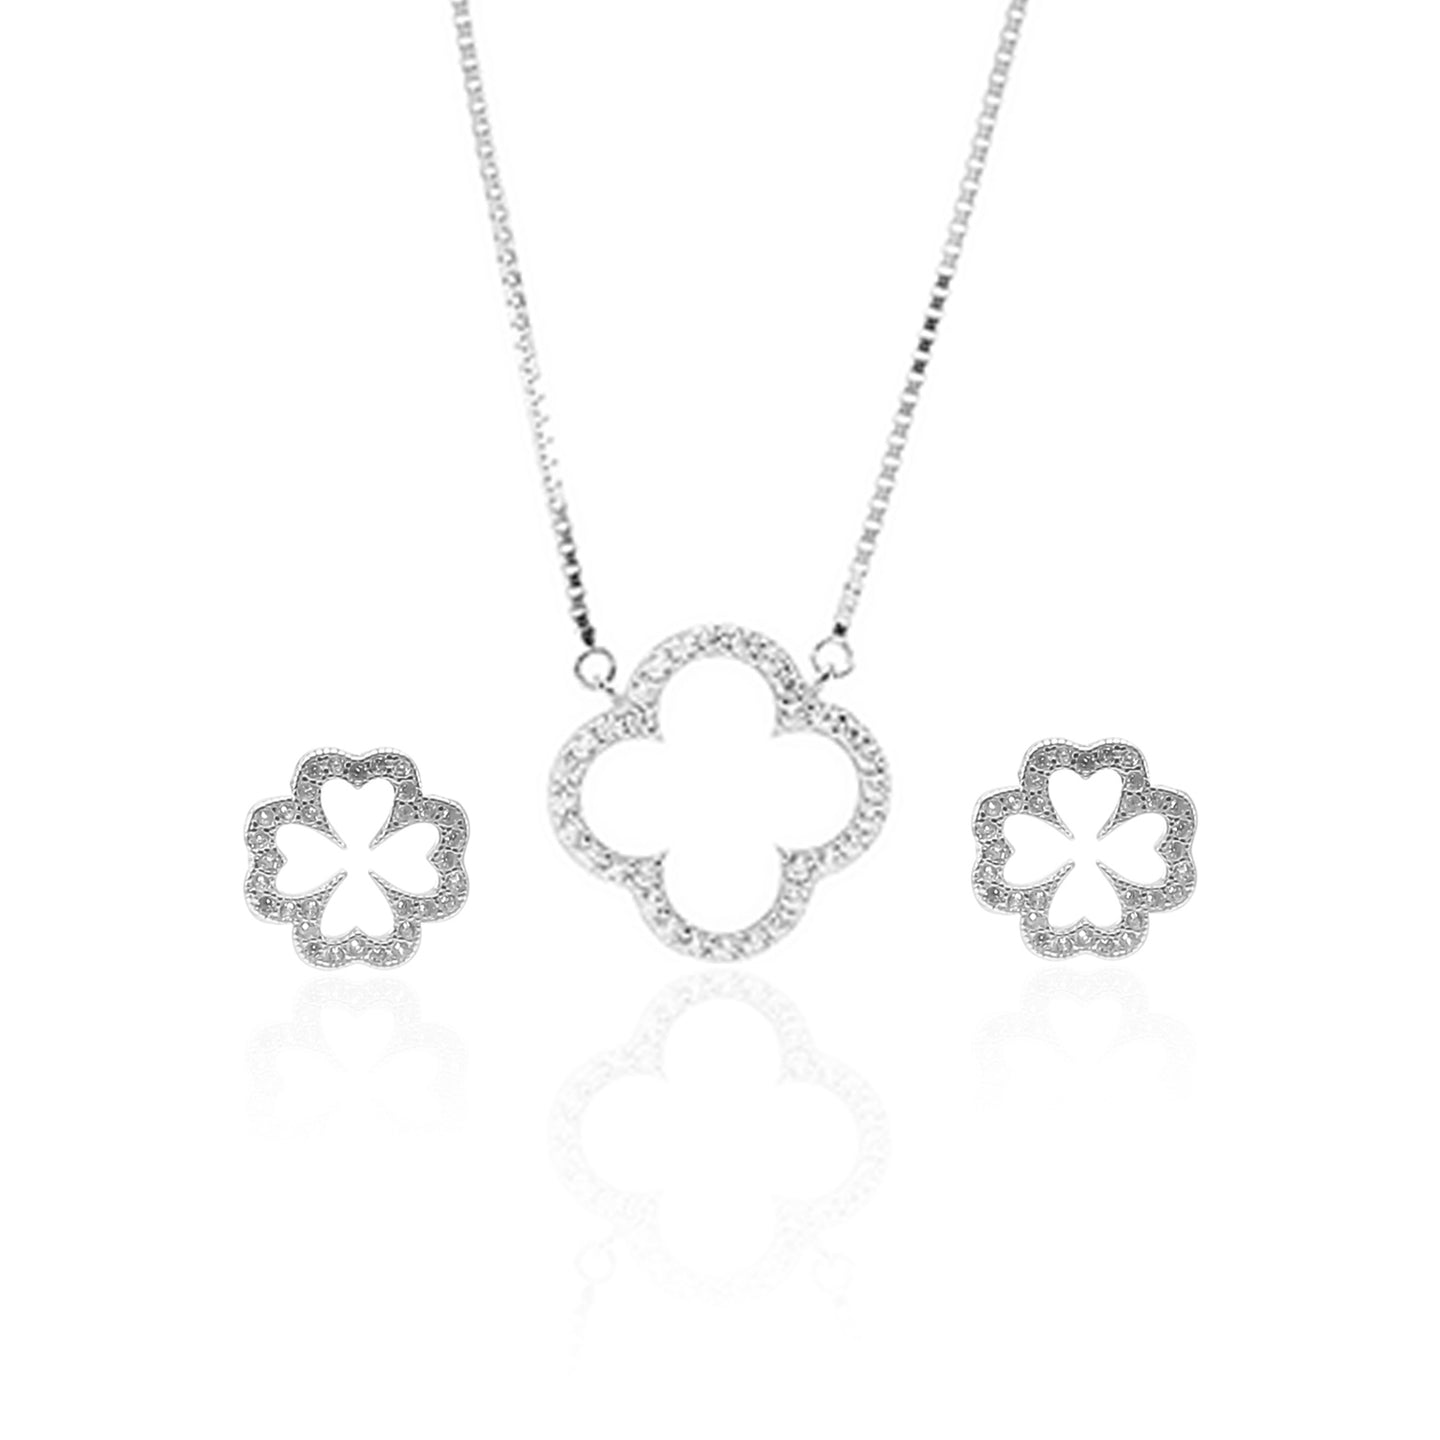 Sparkling Clover Pendant Necklace and Earrings Set - ARJW1022RD - ARCADIO LIFESTYLE